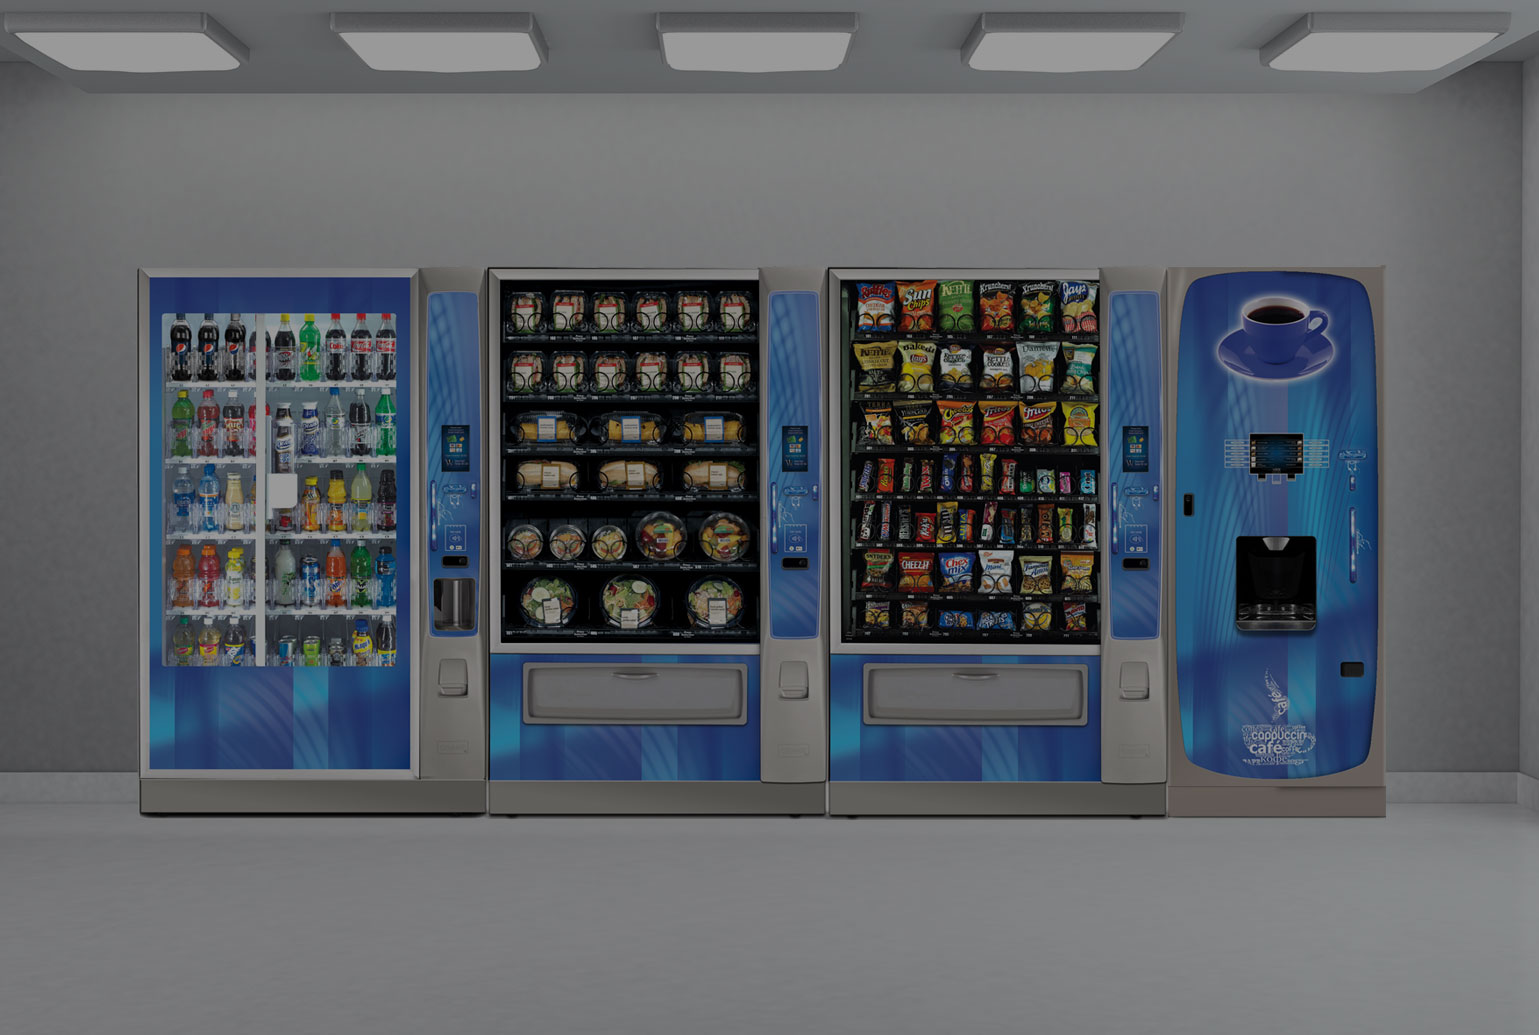 Vending machines in Illinois